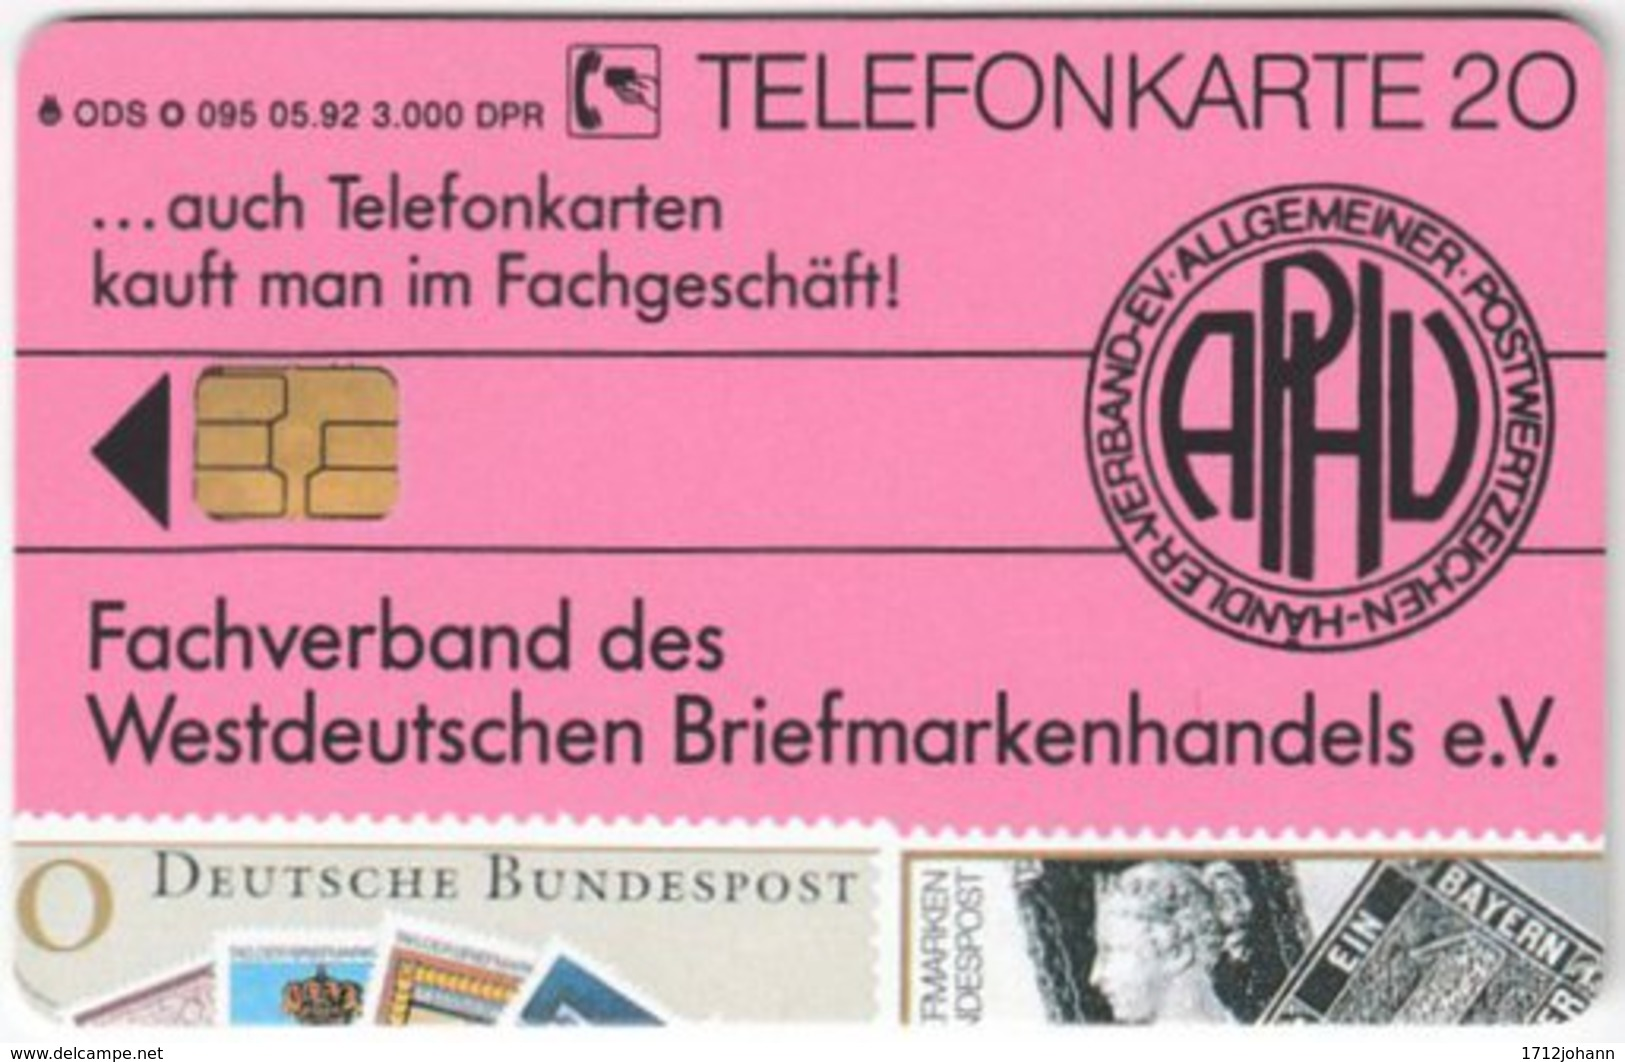 GERMANY O-Serie A-955 - 095 05.92 - Collection, Stamp - MINT - Deutschland